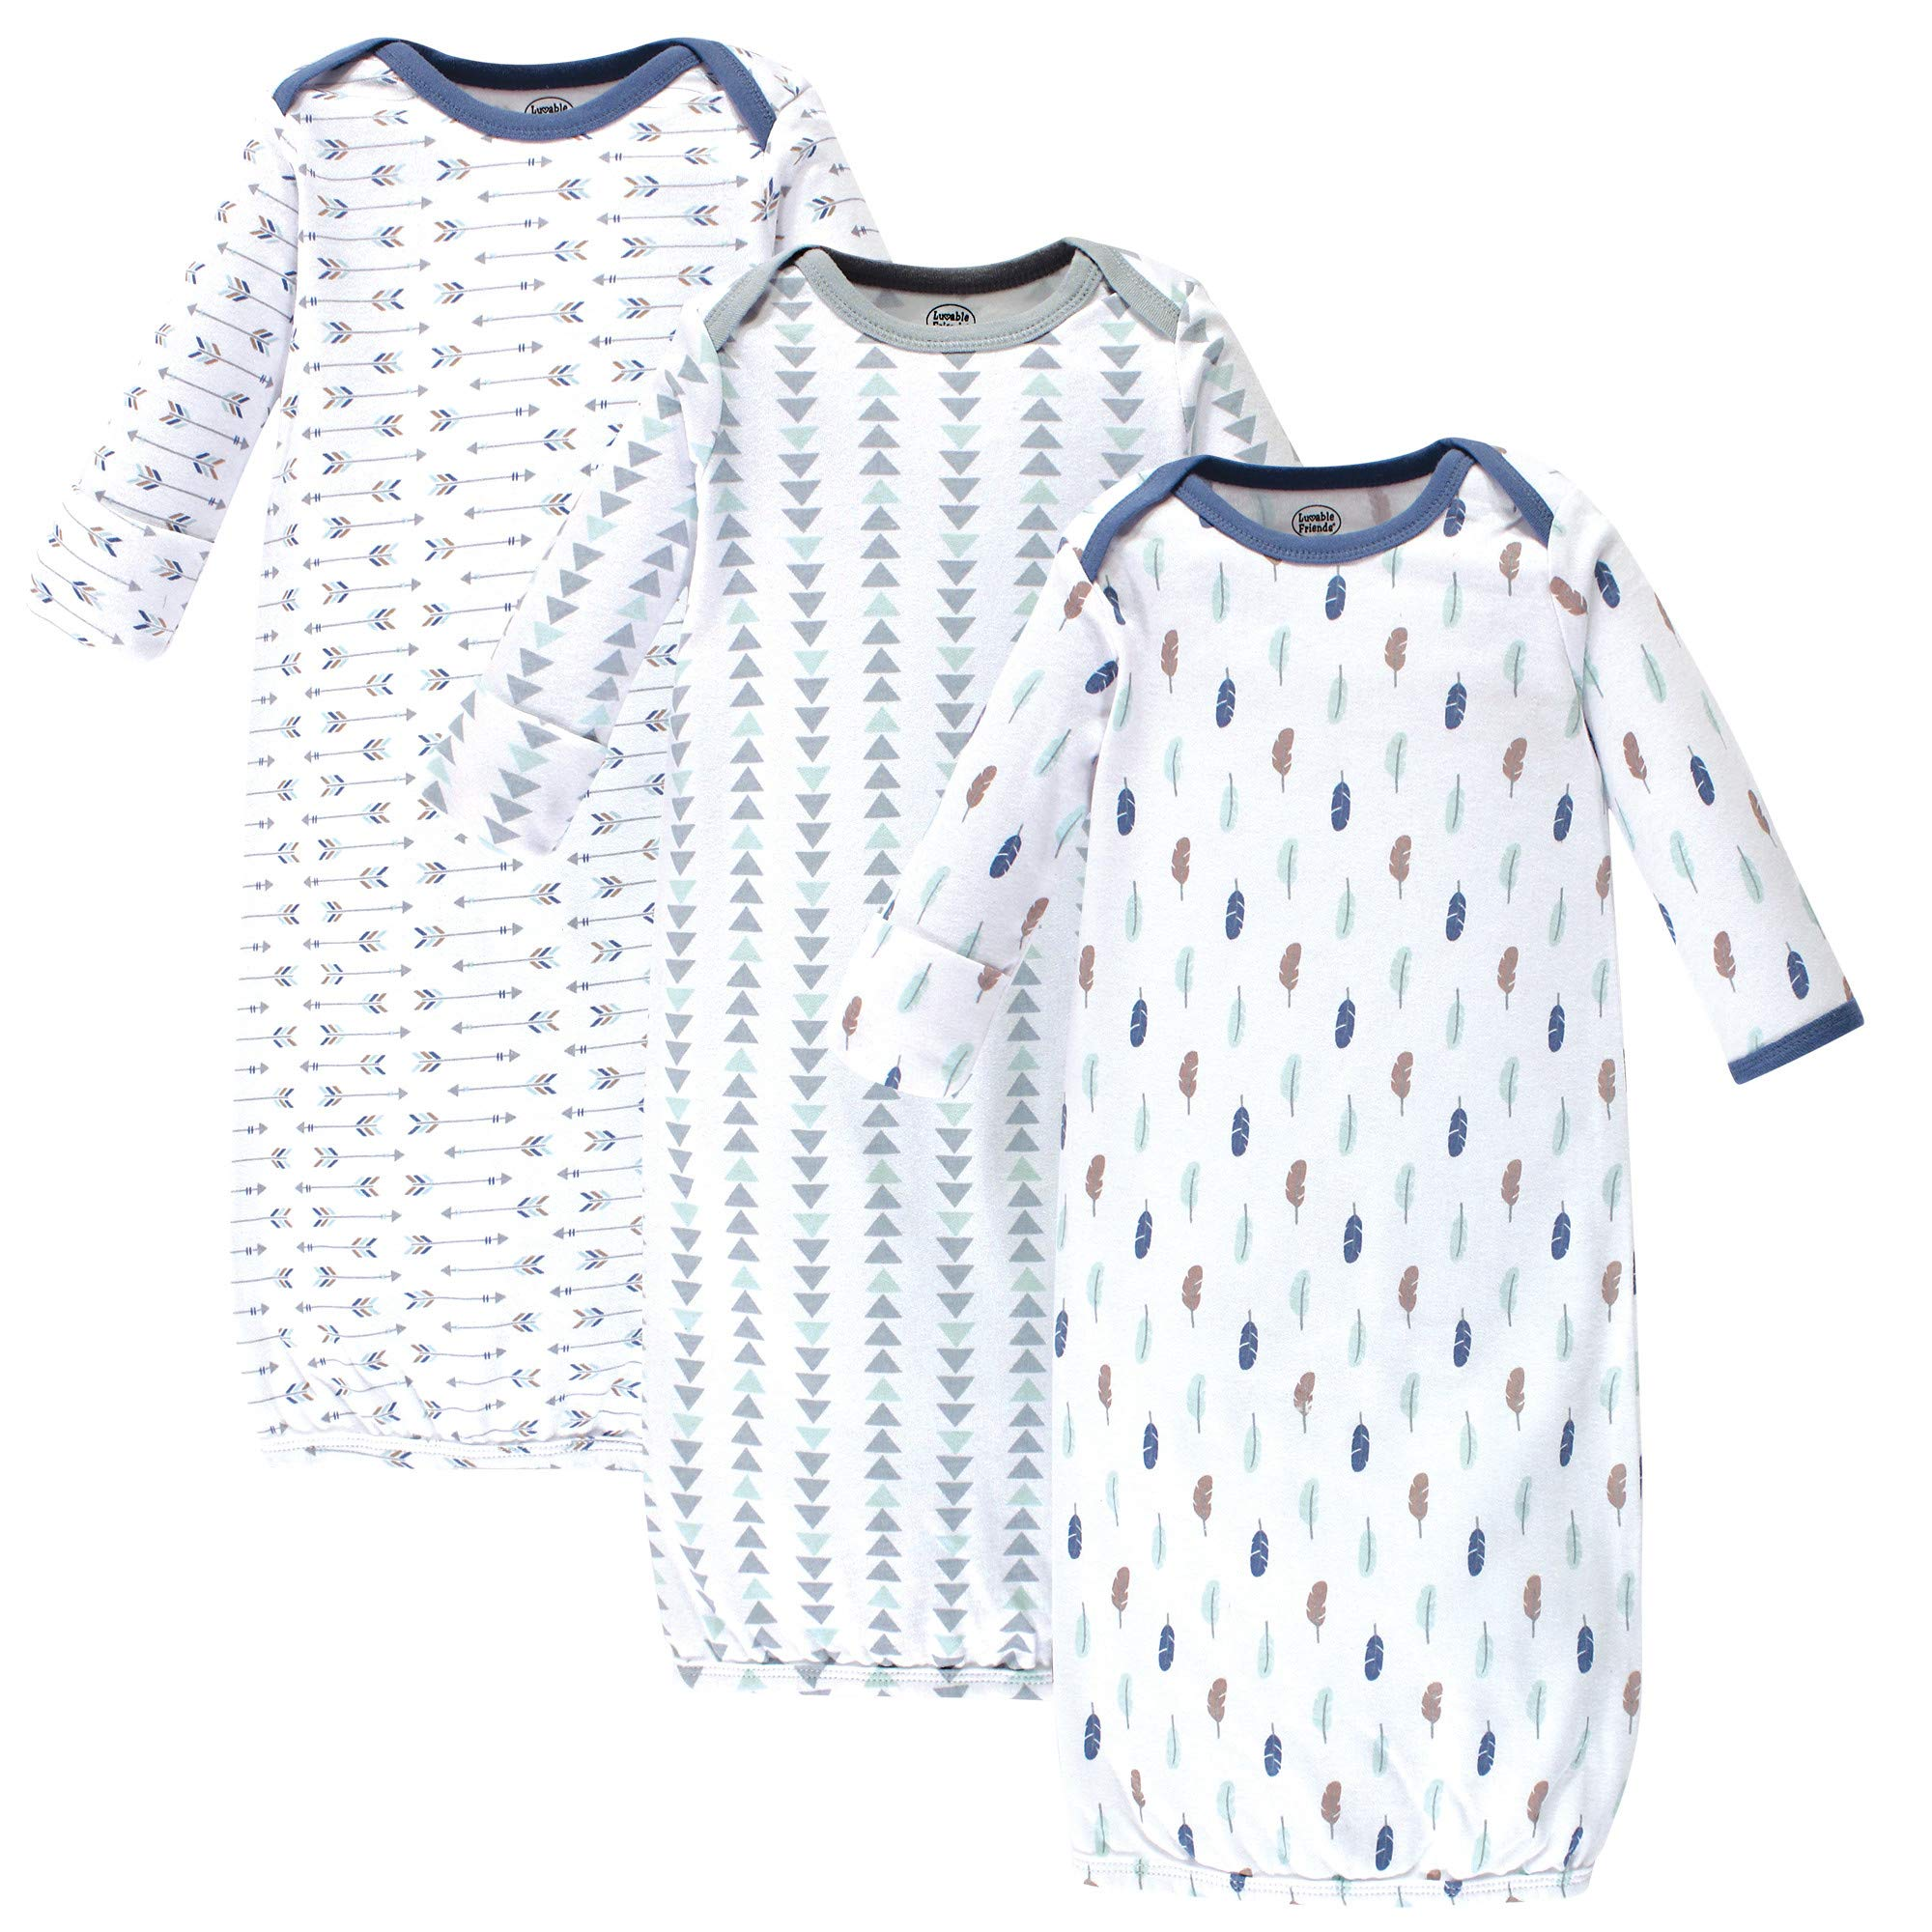 Luvable Friends Unisex Baby Cotton Gowns, Boy Feathers 3-Pack, One Size by Luvable Friends (Image #1)